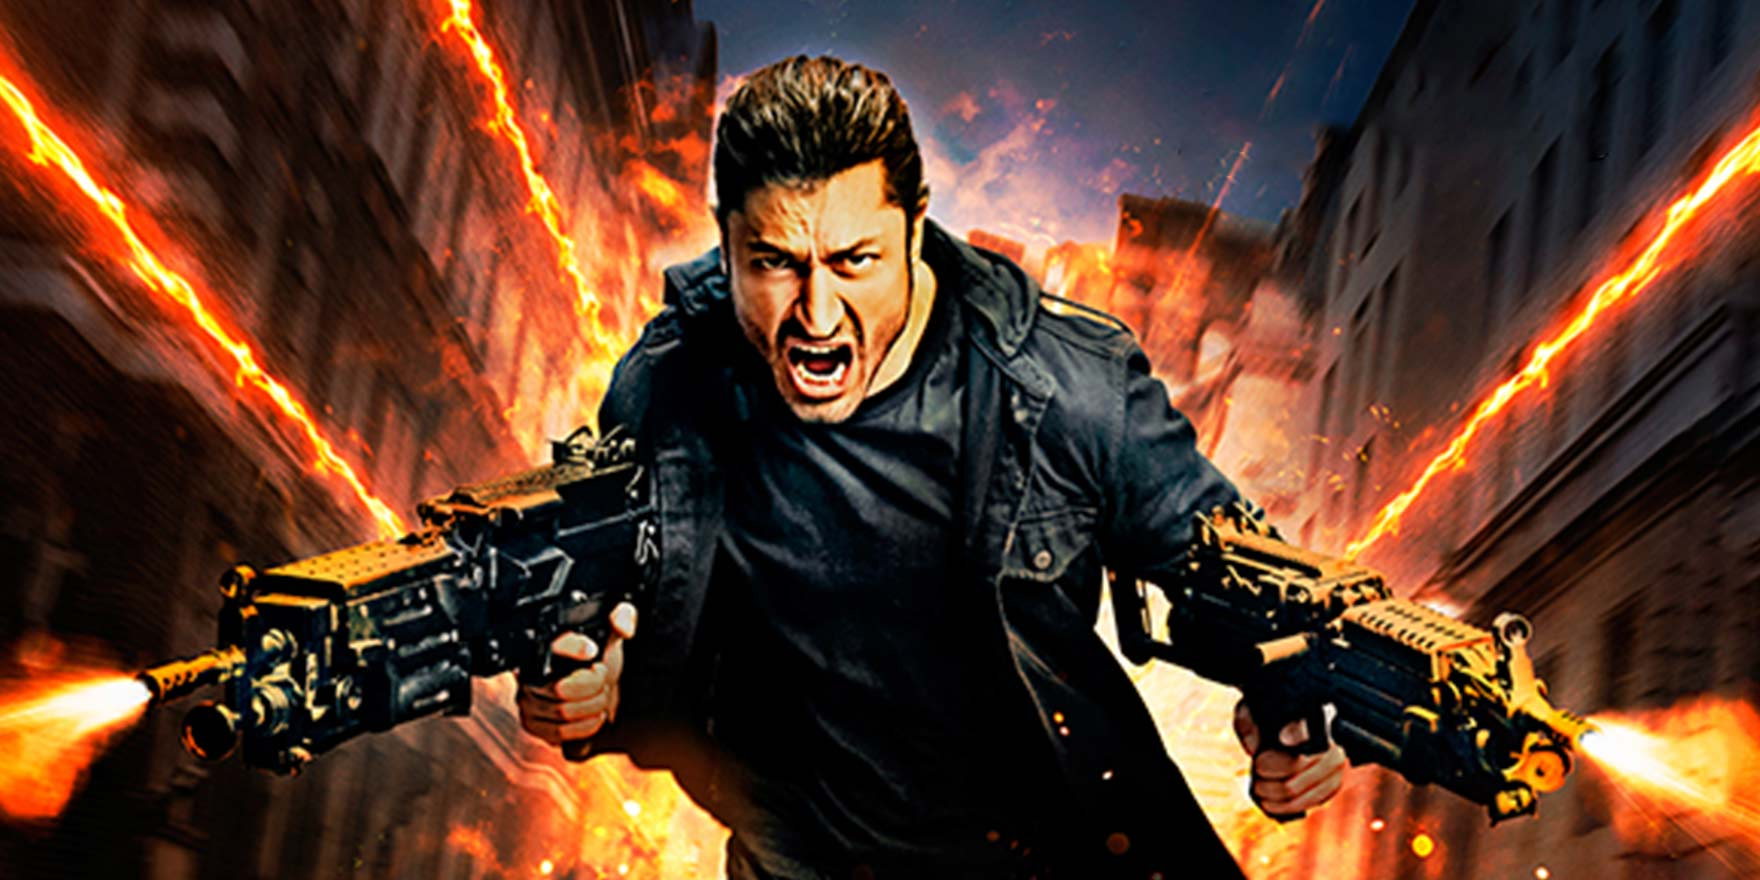 Commando 3 - Header Image